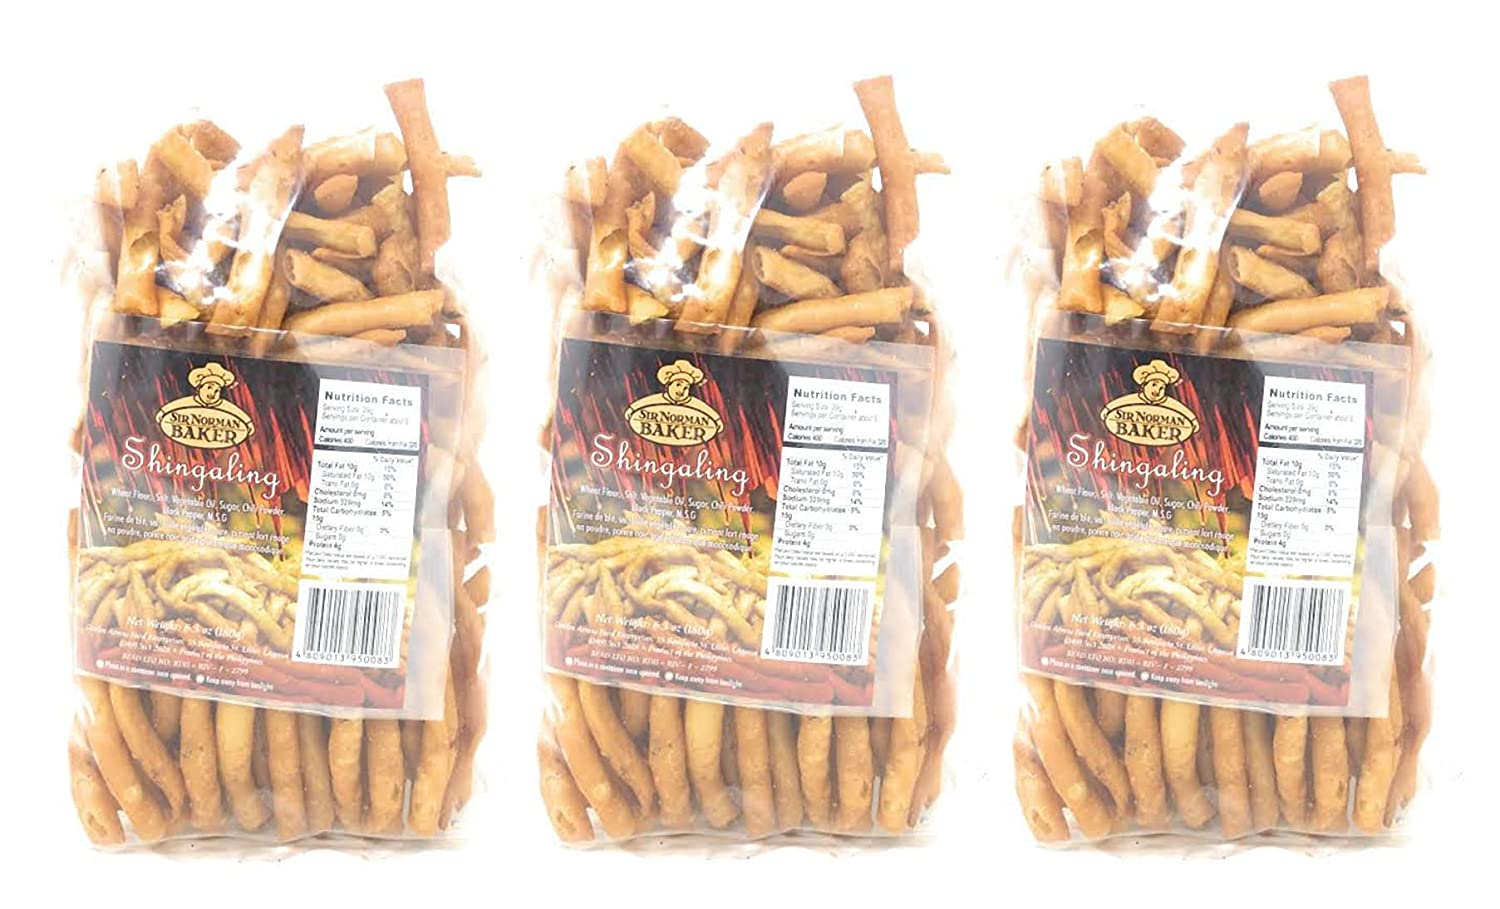 Sir Norman Baker Shingaling Filipino Dried Egg Noodle Snack 6.3oz, Pack of 3